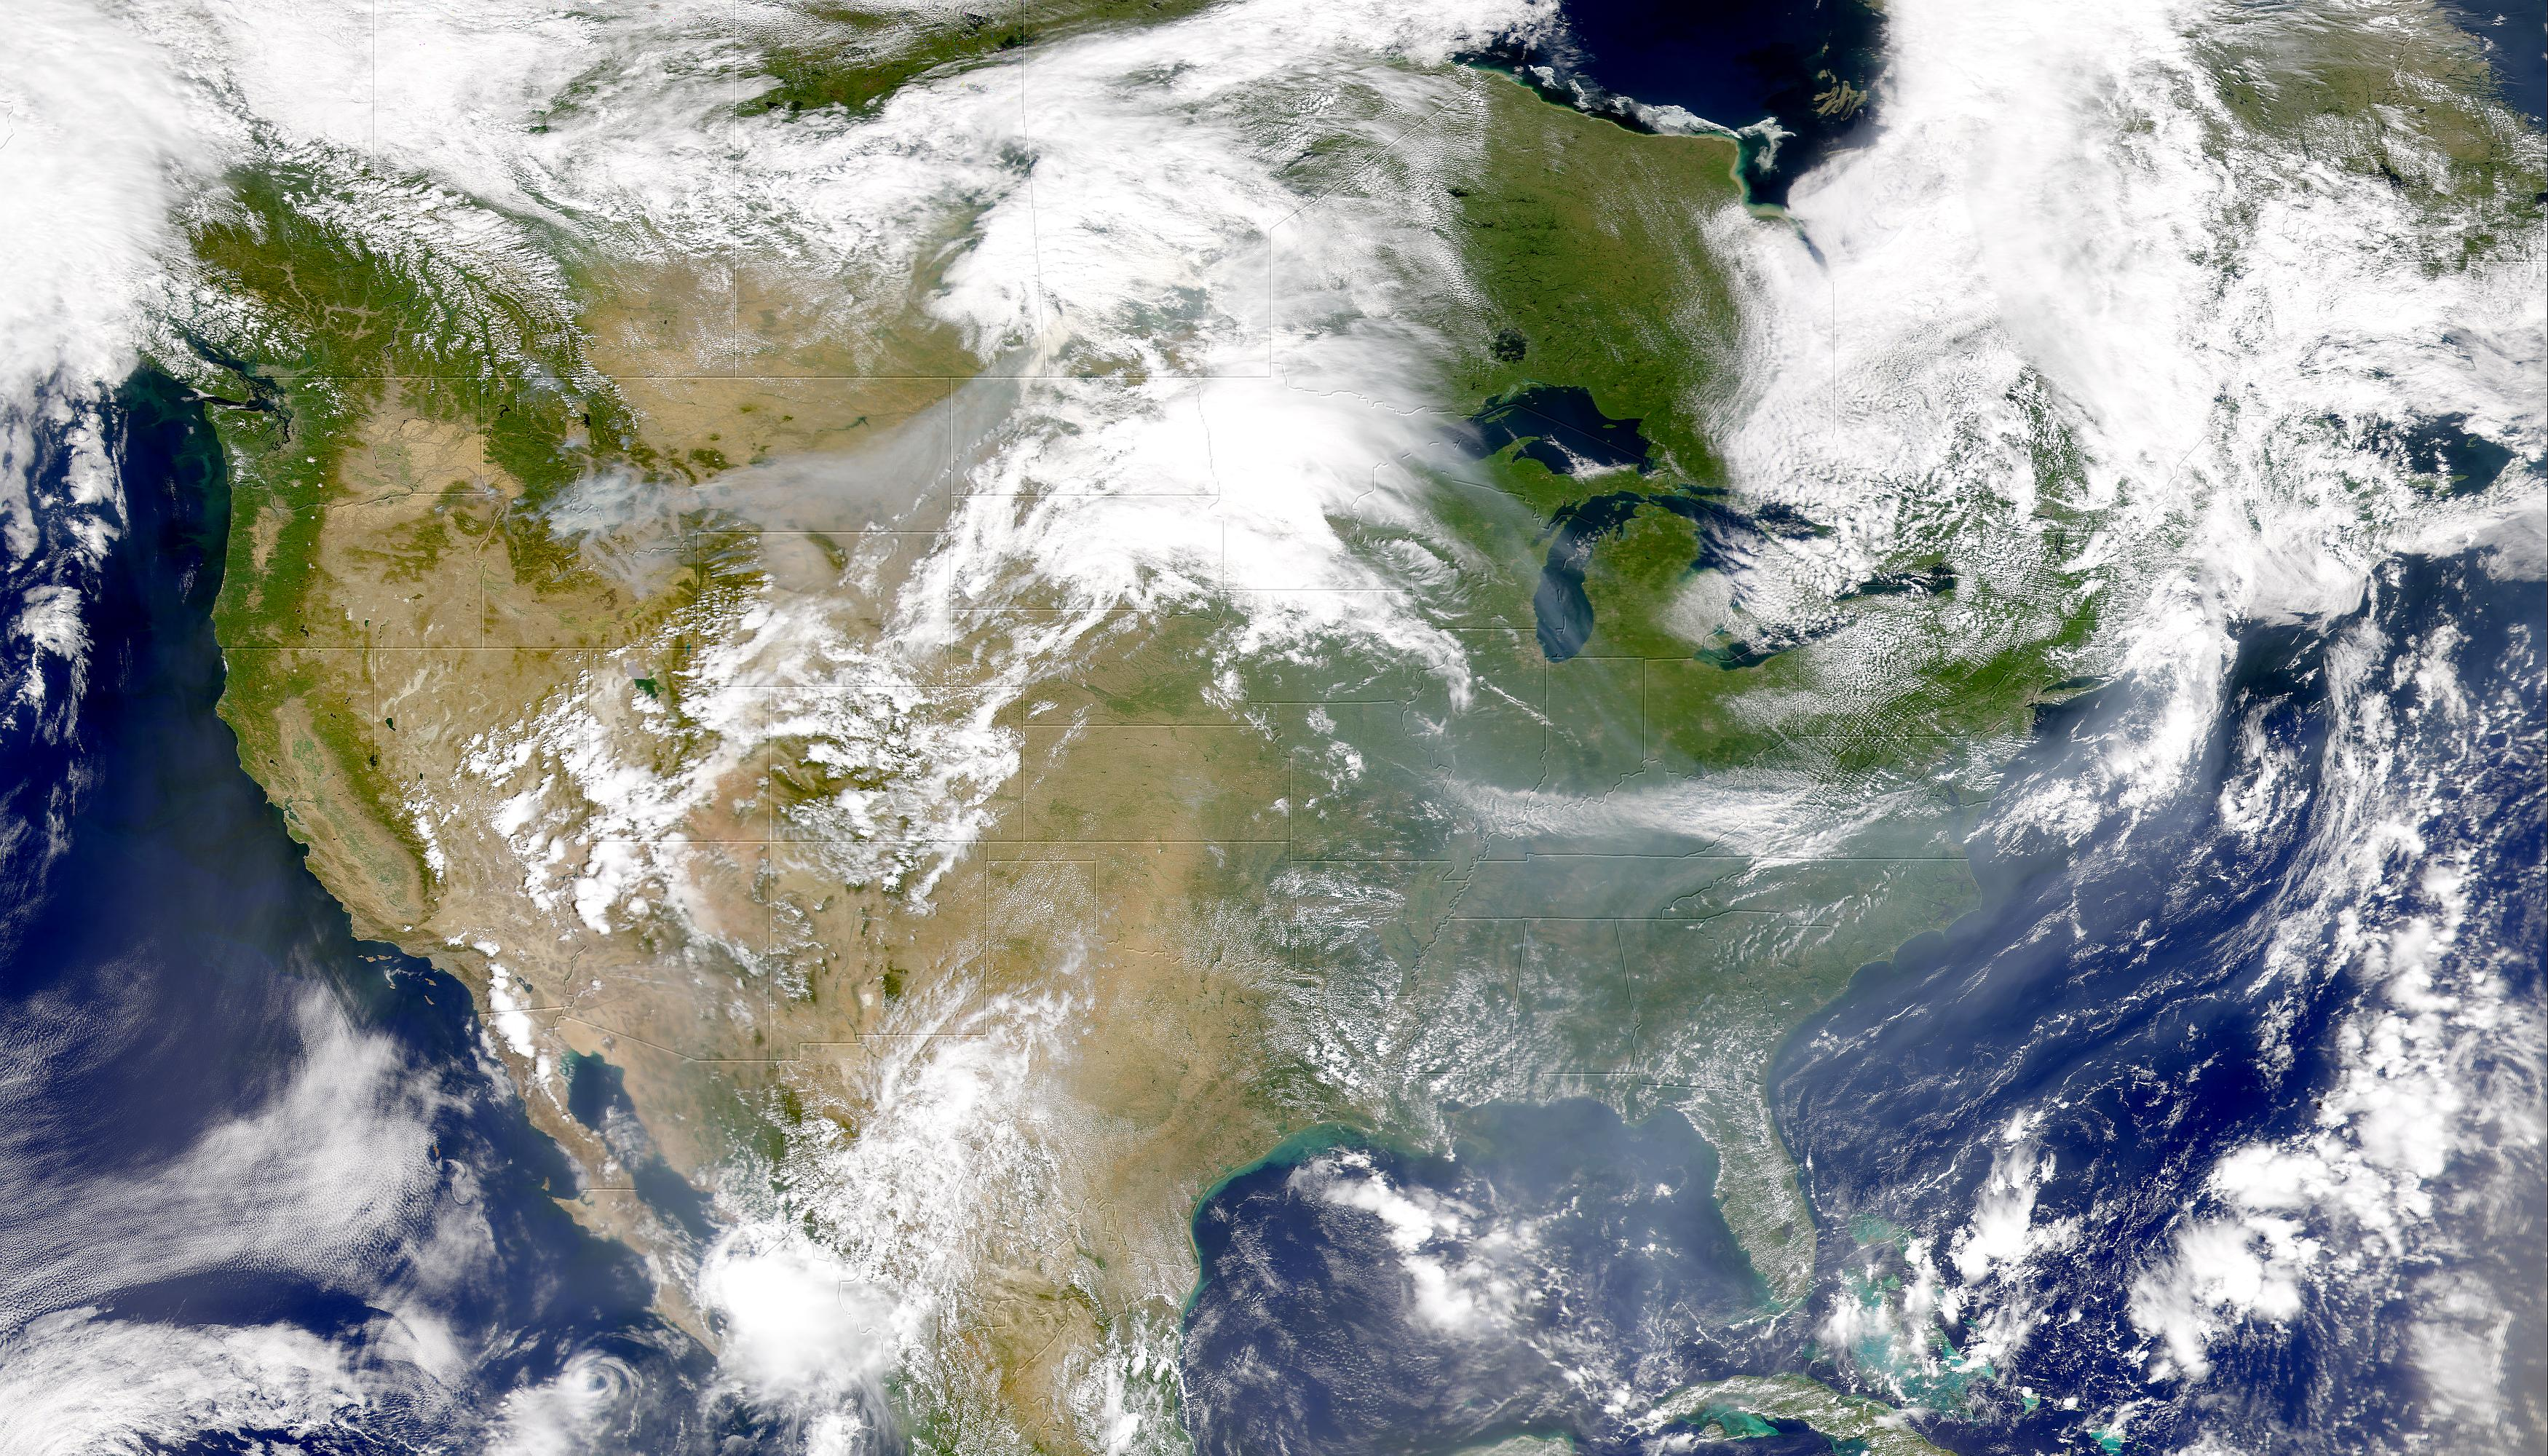 Smoke From West to East over U.S. - related image preview